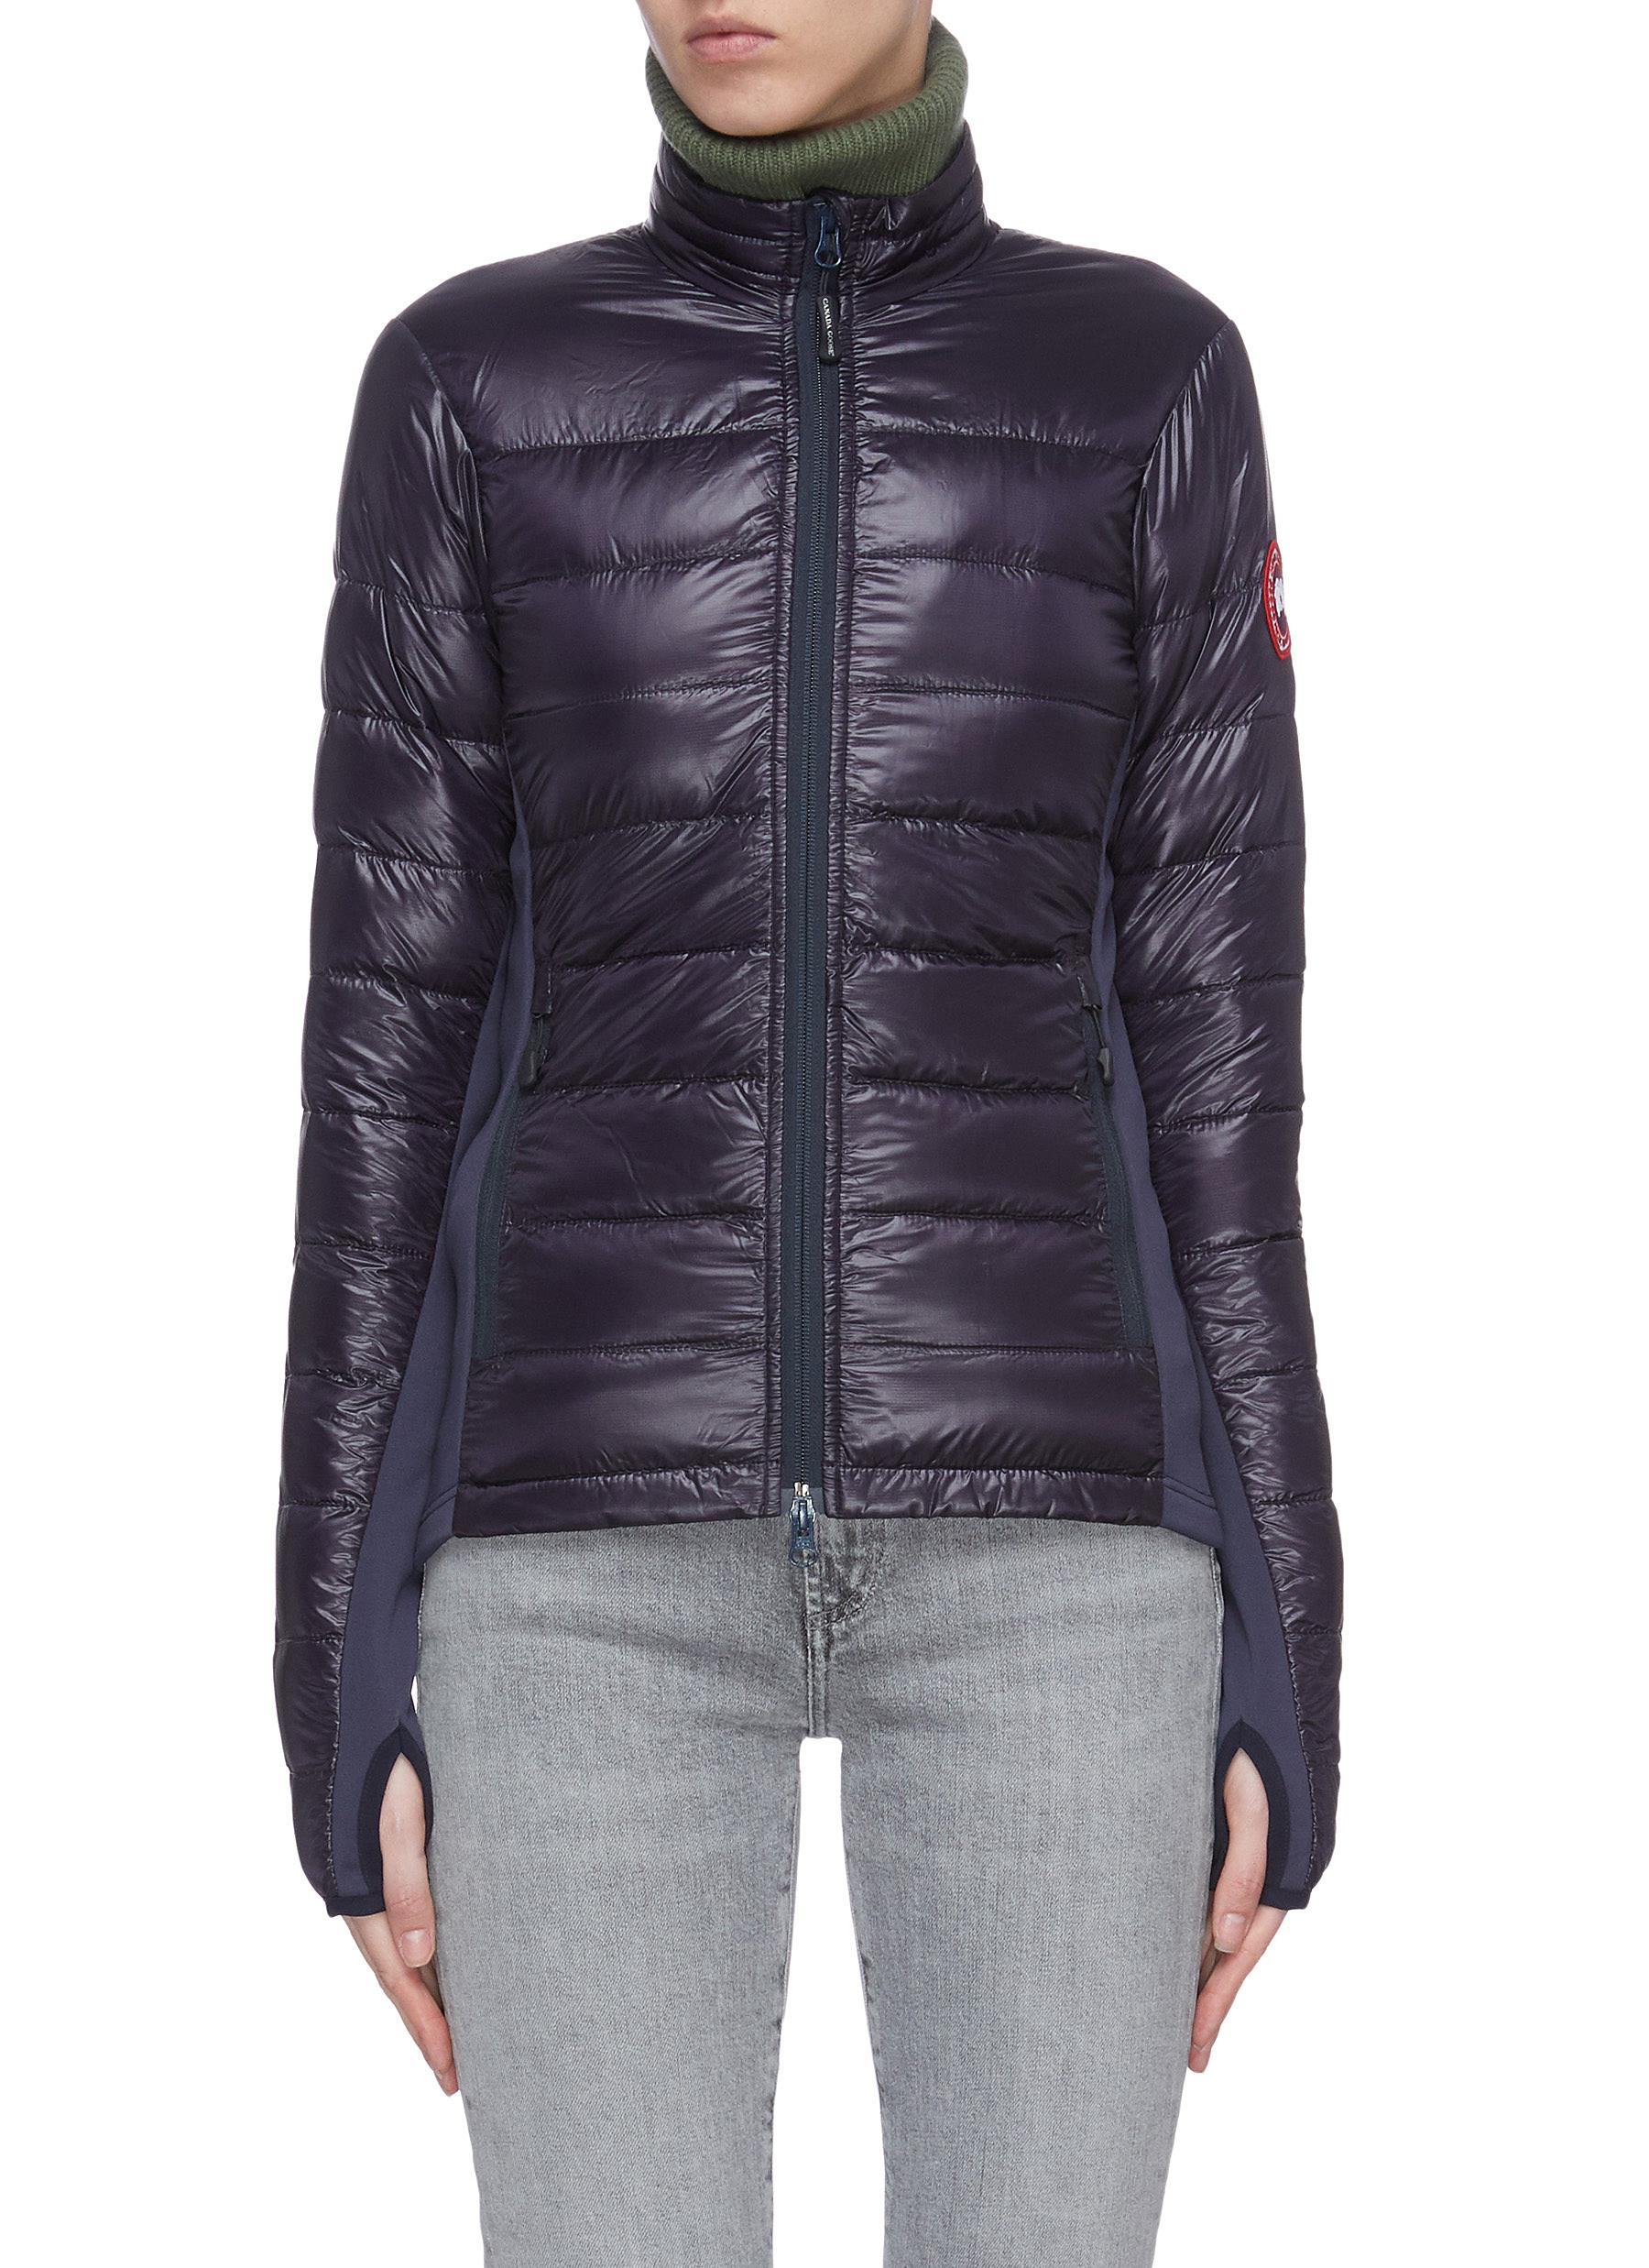 Buy Canada Goose Jackets 'Hybridge Lite' outseam stand collar puffer jacket